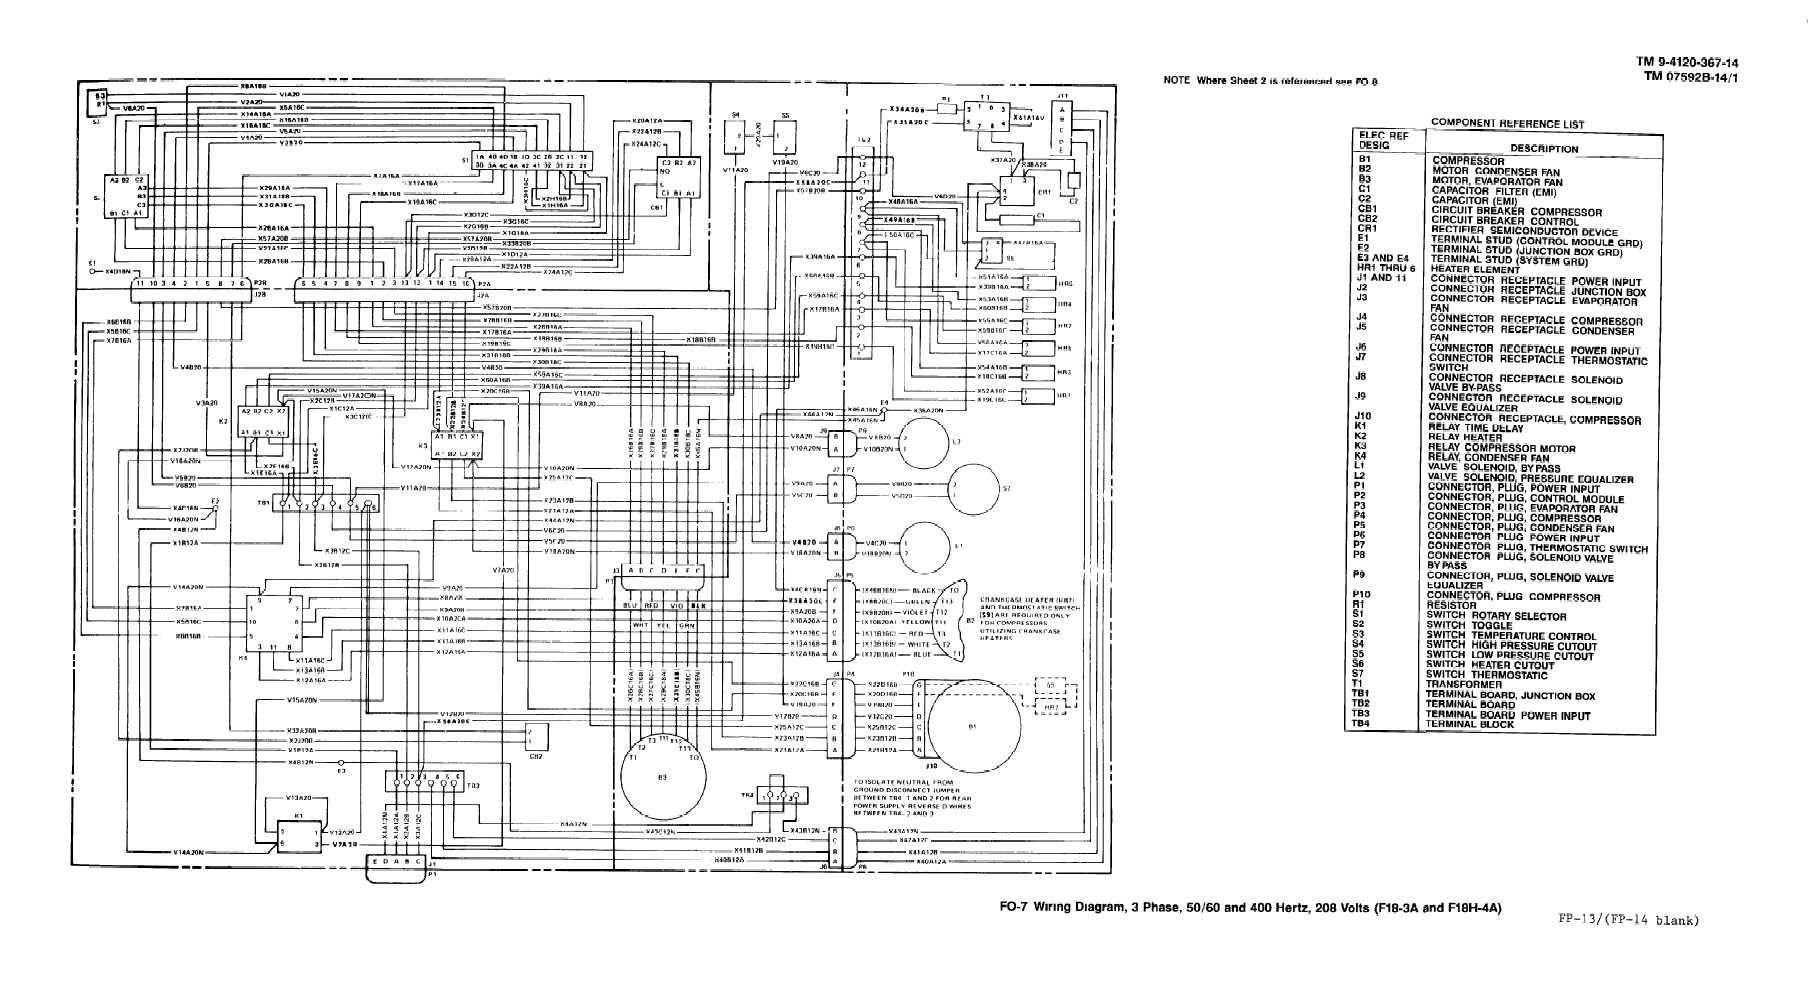 Fo 7 Wiring Diagram 3 Phase 400 Hertz 208 Volts Model